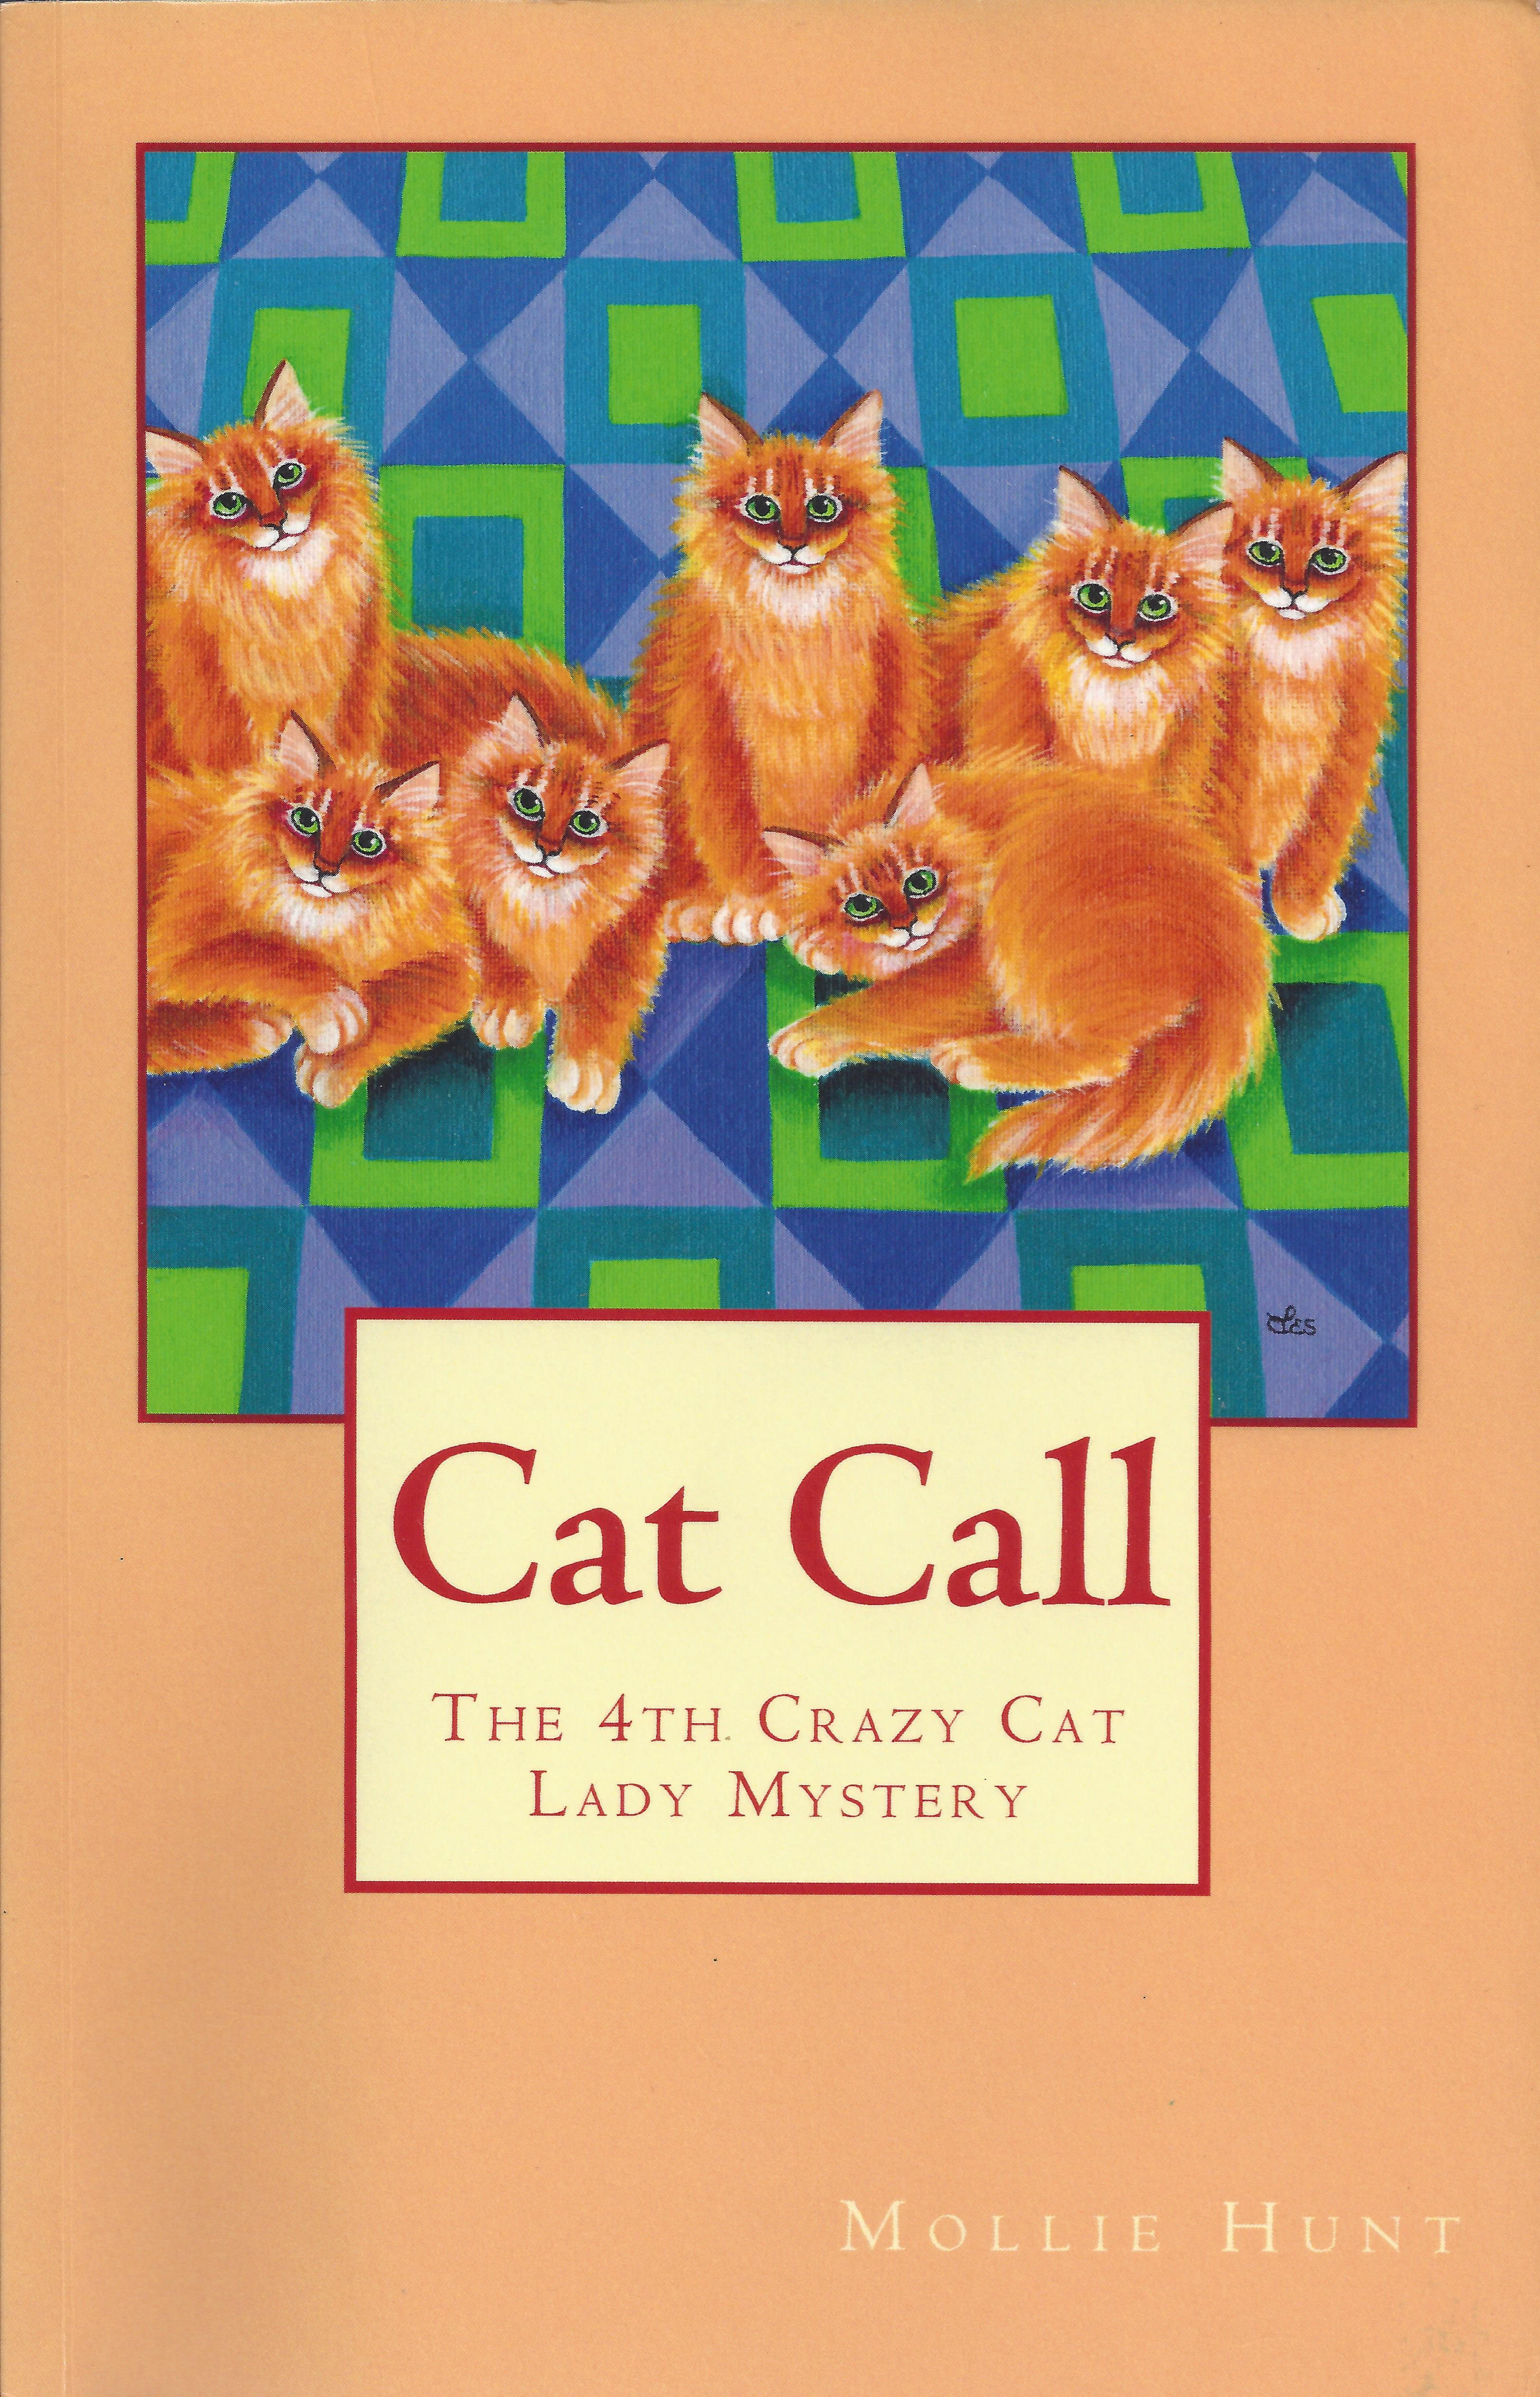 Its friday cat pictures it s friday so it s time for - I Ve Okayed The Beautiful New Cover And Now It S Time To Share It With You I M So Happy To Once Again Feature Artwork By Cat Artist Leslie Cobb